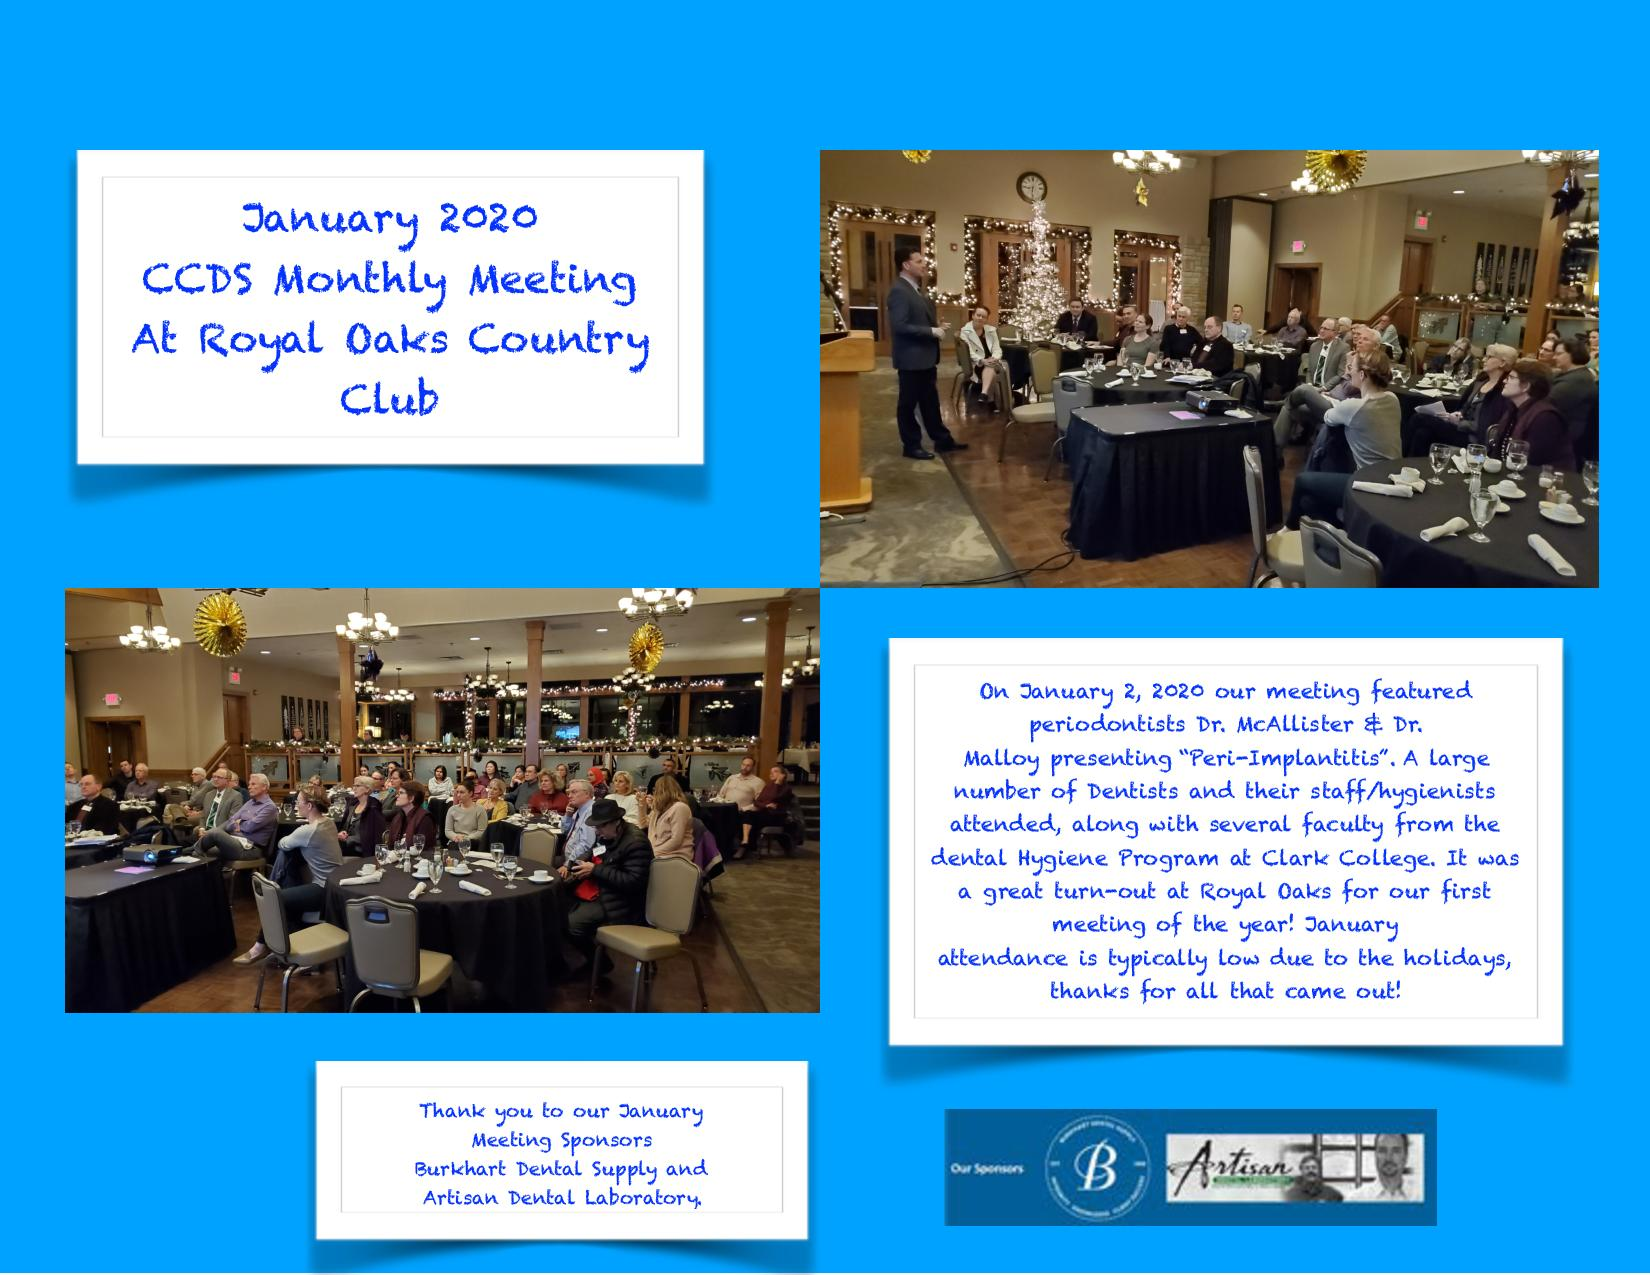 January 2020 meeting collage